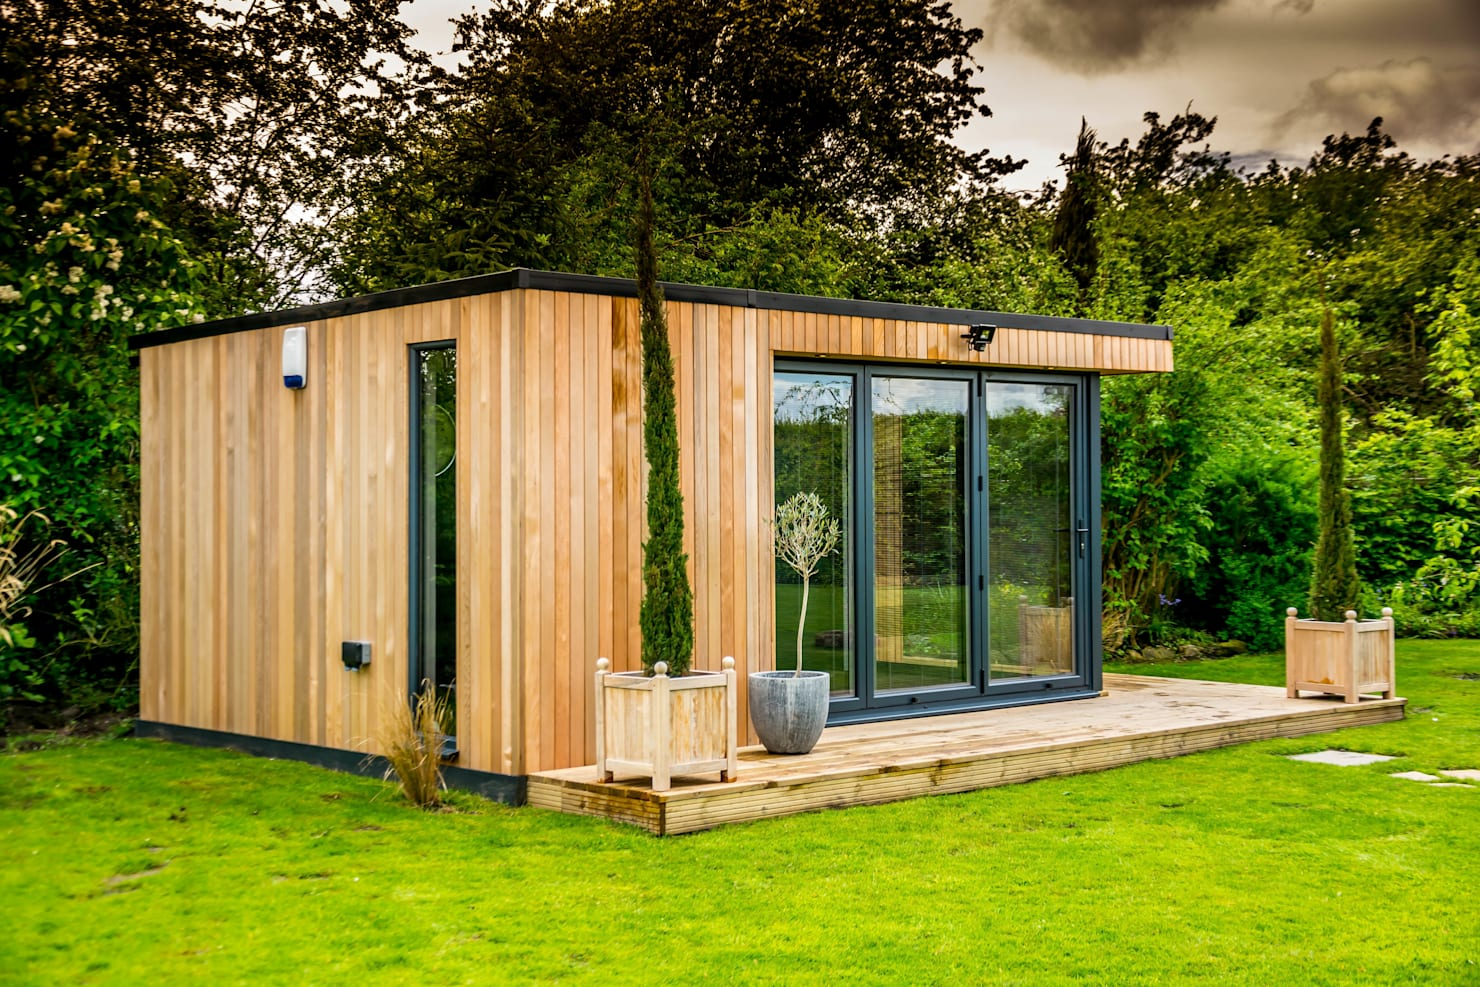 DIY: 11 steps to building your own home